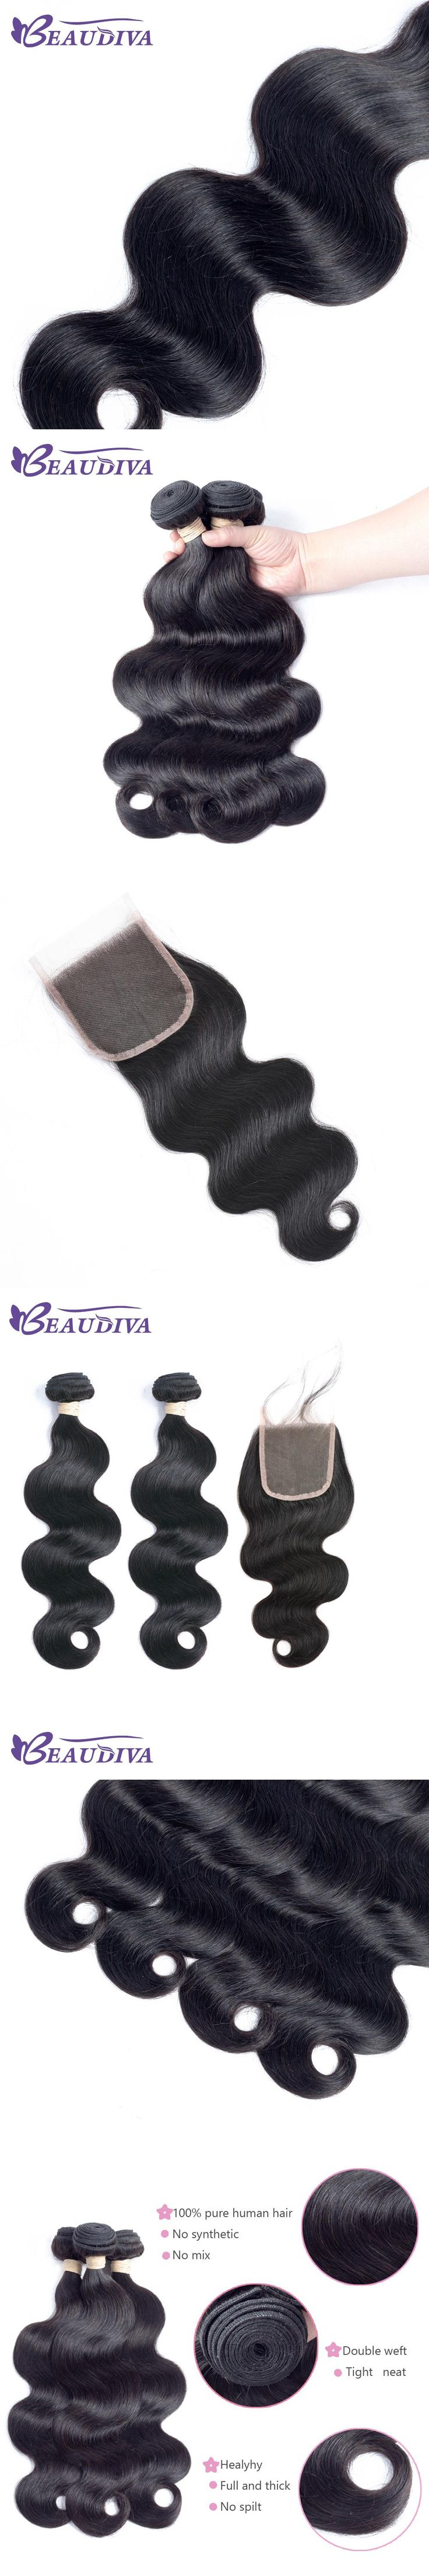 BEAUDIVA Pre-Colored Body Wave 1# Jet Black Color Human Hair Two Bundles With One 4*4 Closure Remy 100% Human Hair Weave